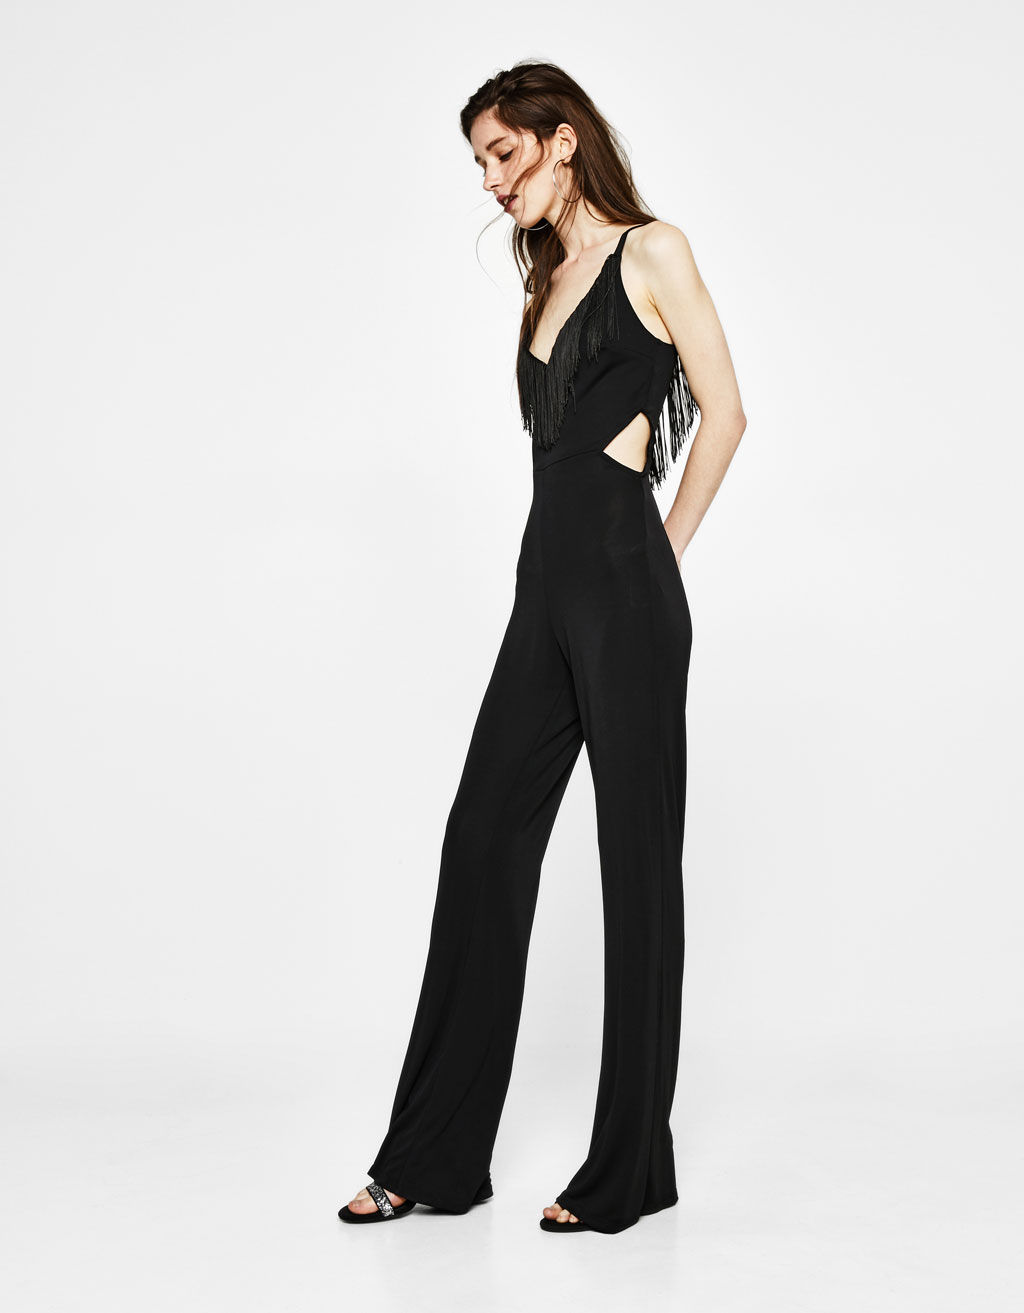 Flowing jumpsuit with fringe